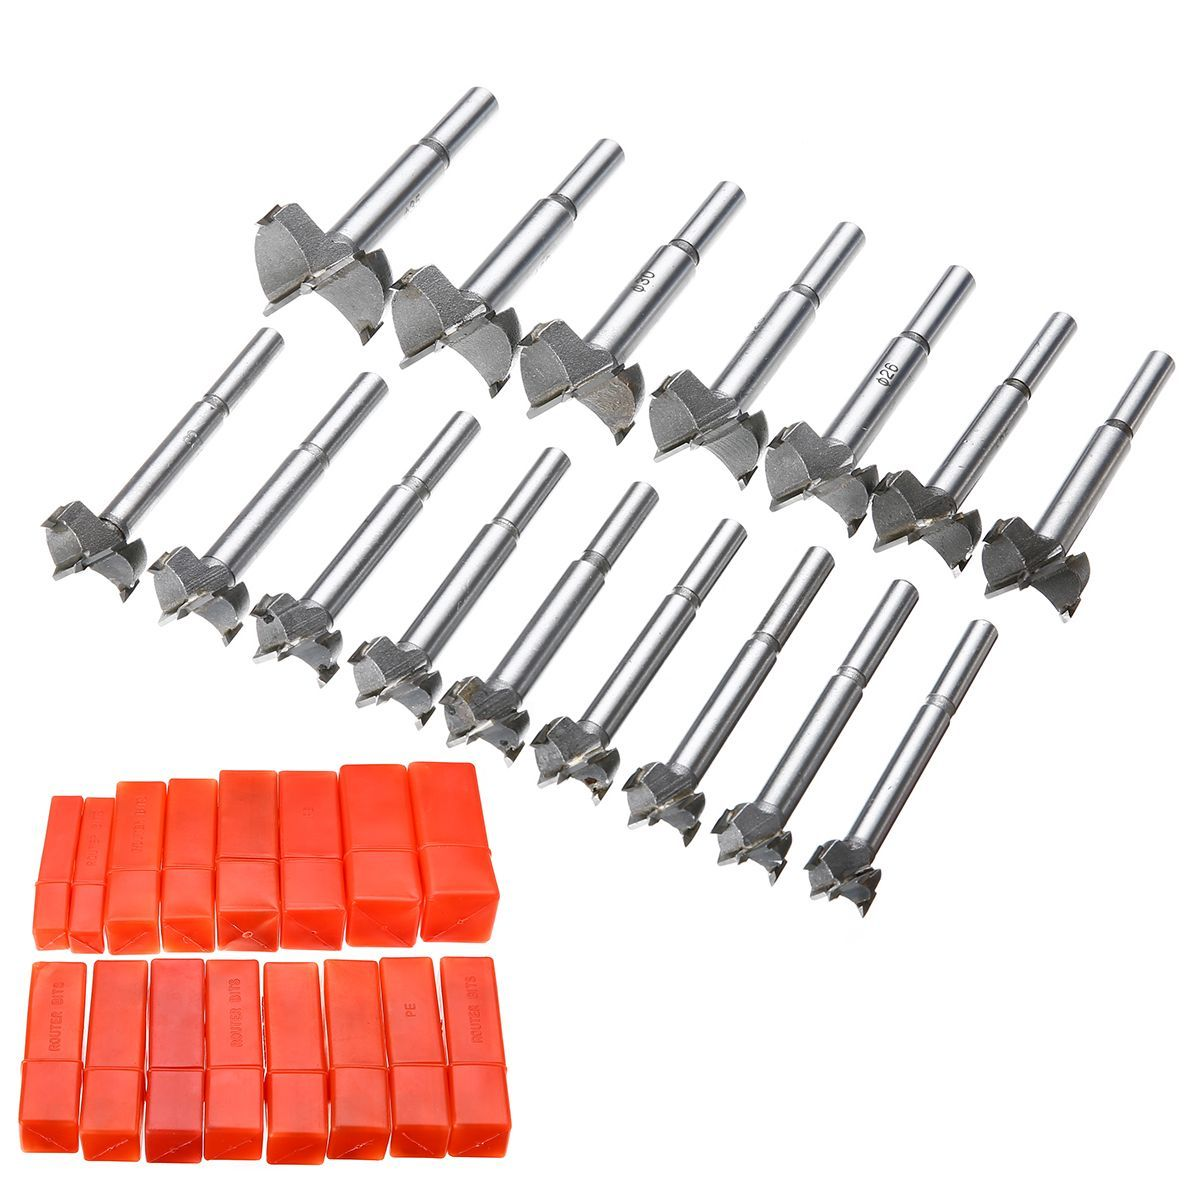 Dwz 16pcs 15 35mm Forstner Woodworking Hole Saw Drill Bits Hole Cutter Set Tool Affiliate Woodworkingtools Woodworking Tools